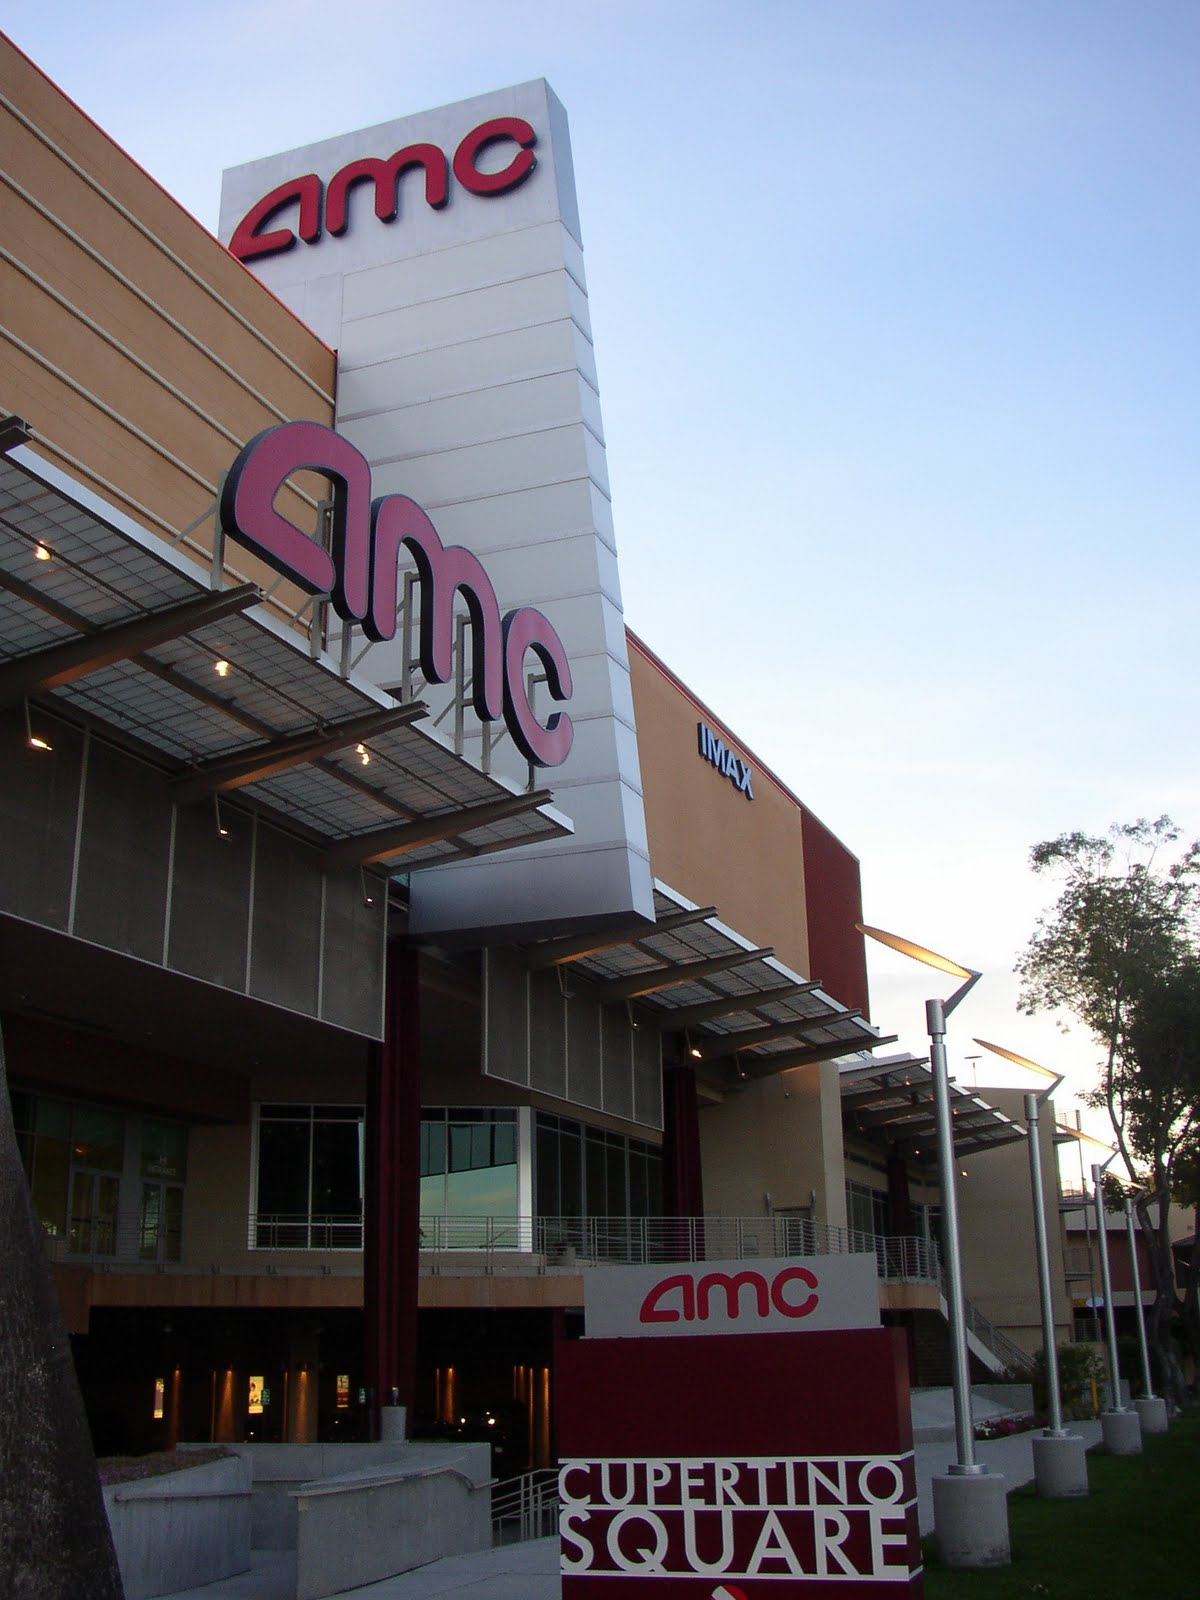 AMC THEATRES Movie Theatre located in your area From a family owned business to our future as one of the world's premiere entertainment companies AMC Theatres welcomes approximately million guests annually through the doors of its more than locations.